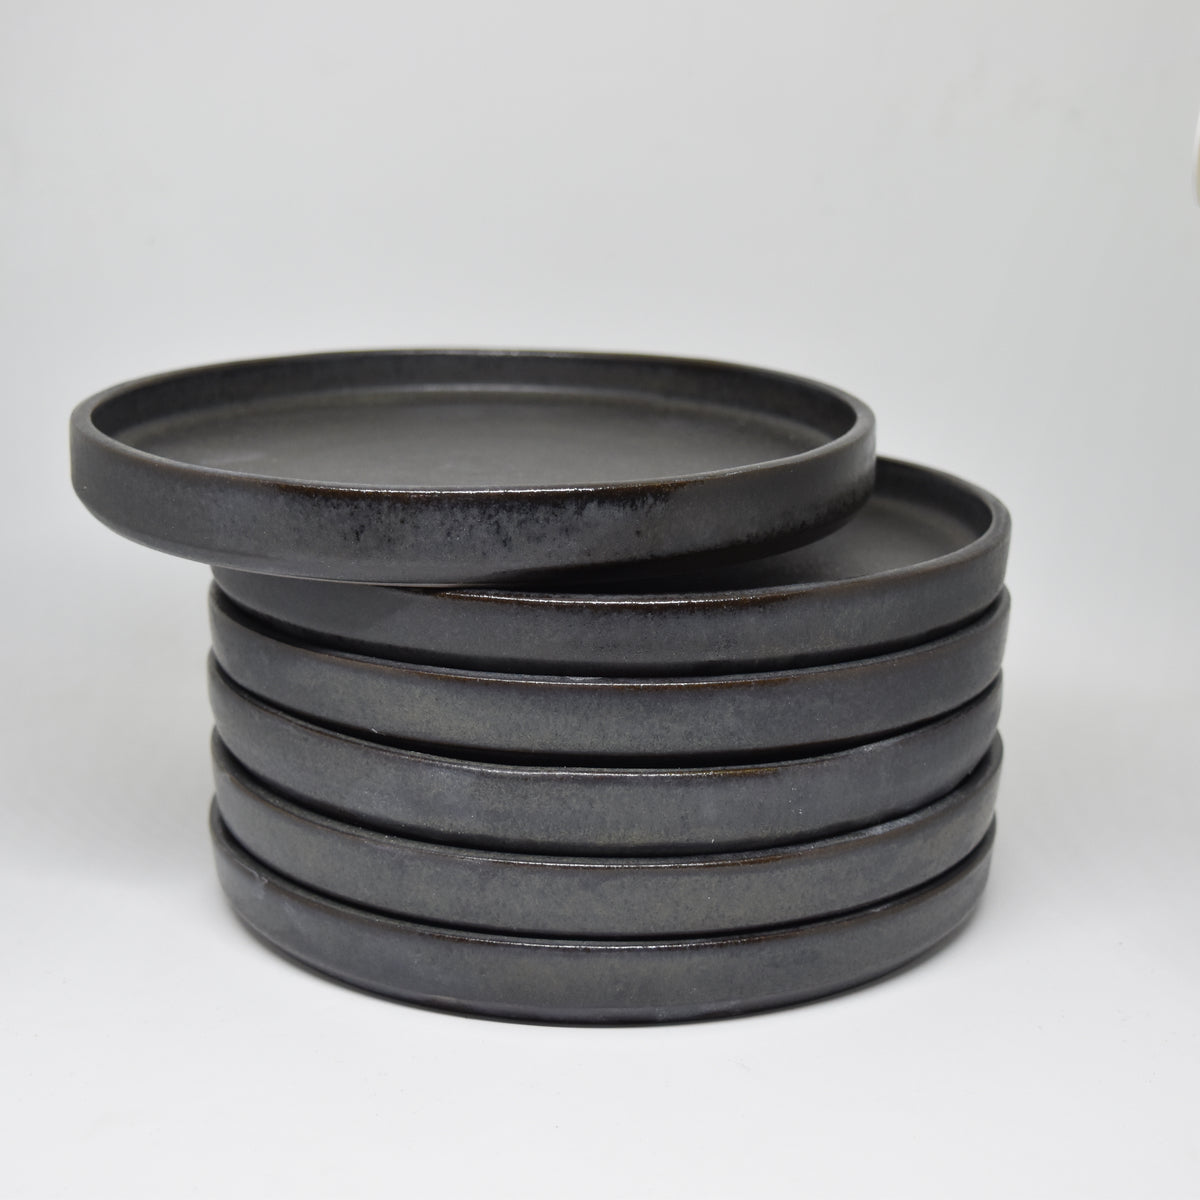 Charcoal Bread Plate